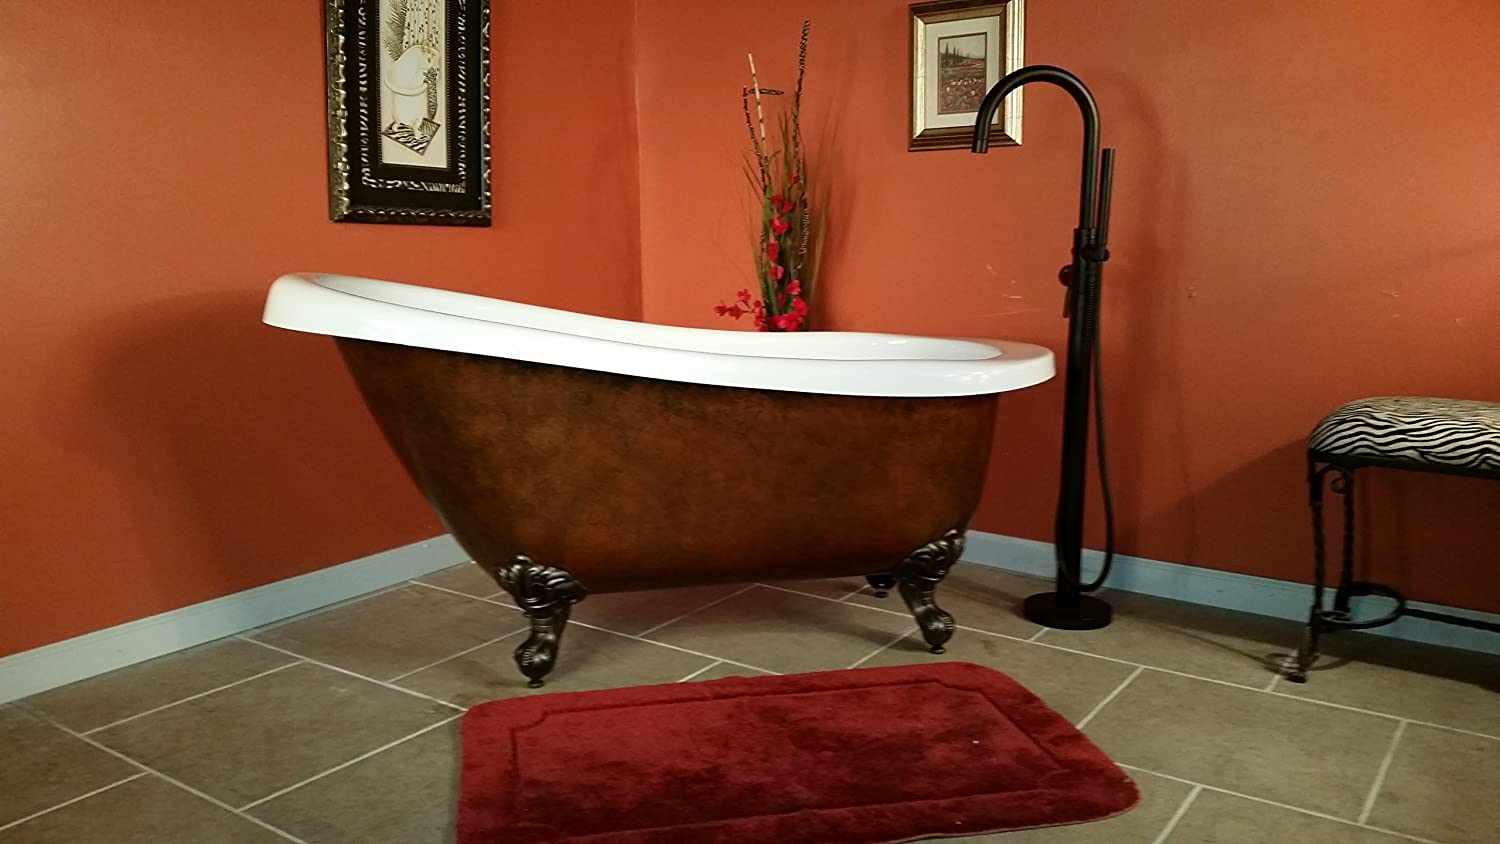 Acrylic 61 Inch Faux Copper Clawfoot Bathtub Without Faucet Holes ...